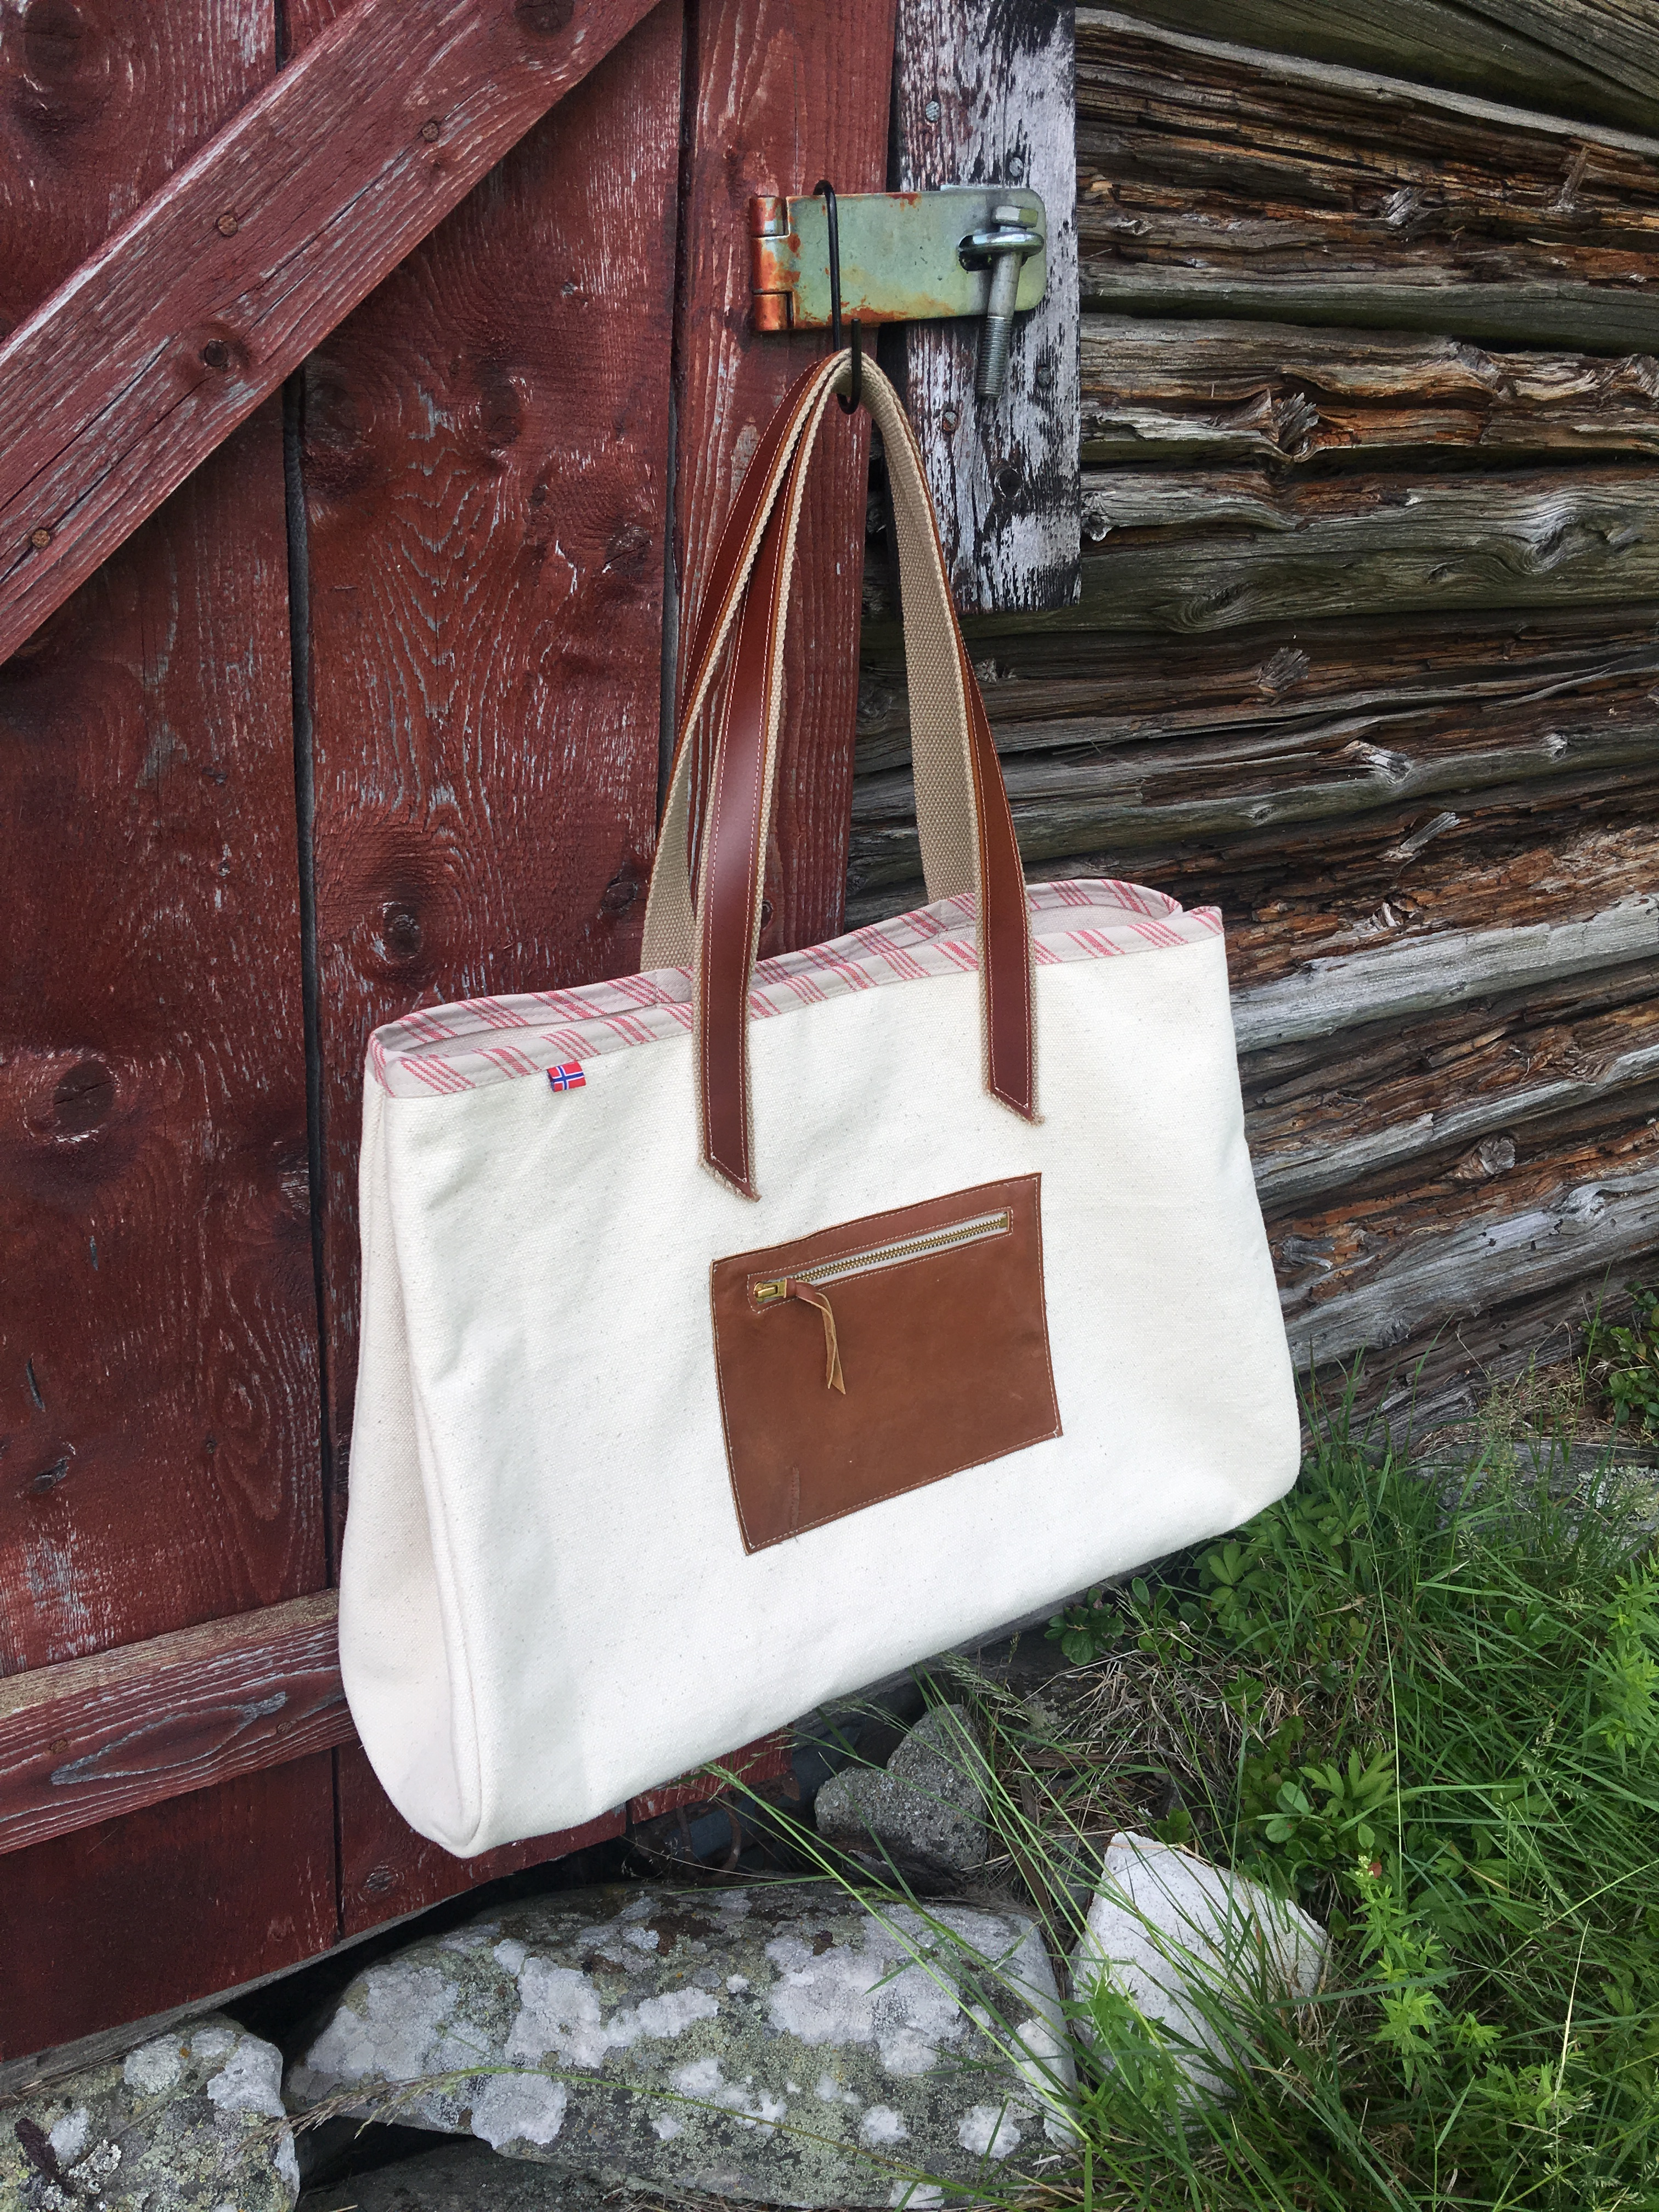 Sewing a canvas tote bag with a leather zip pocket